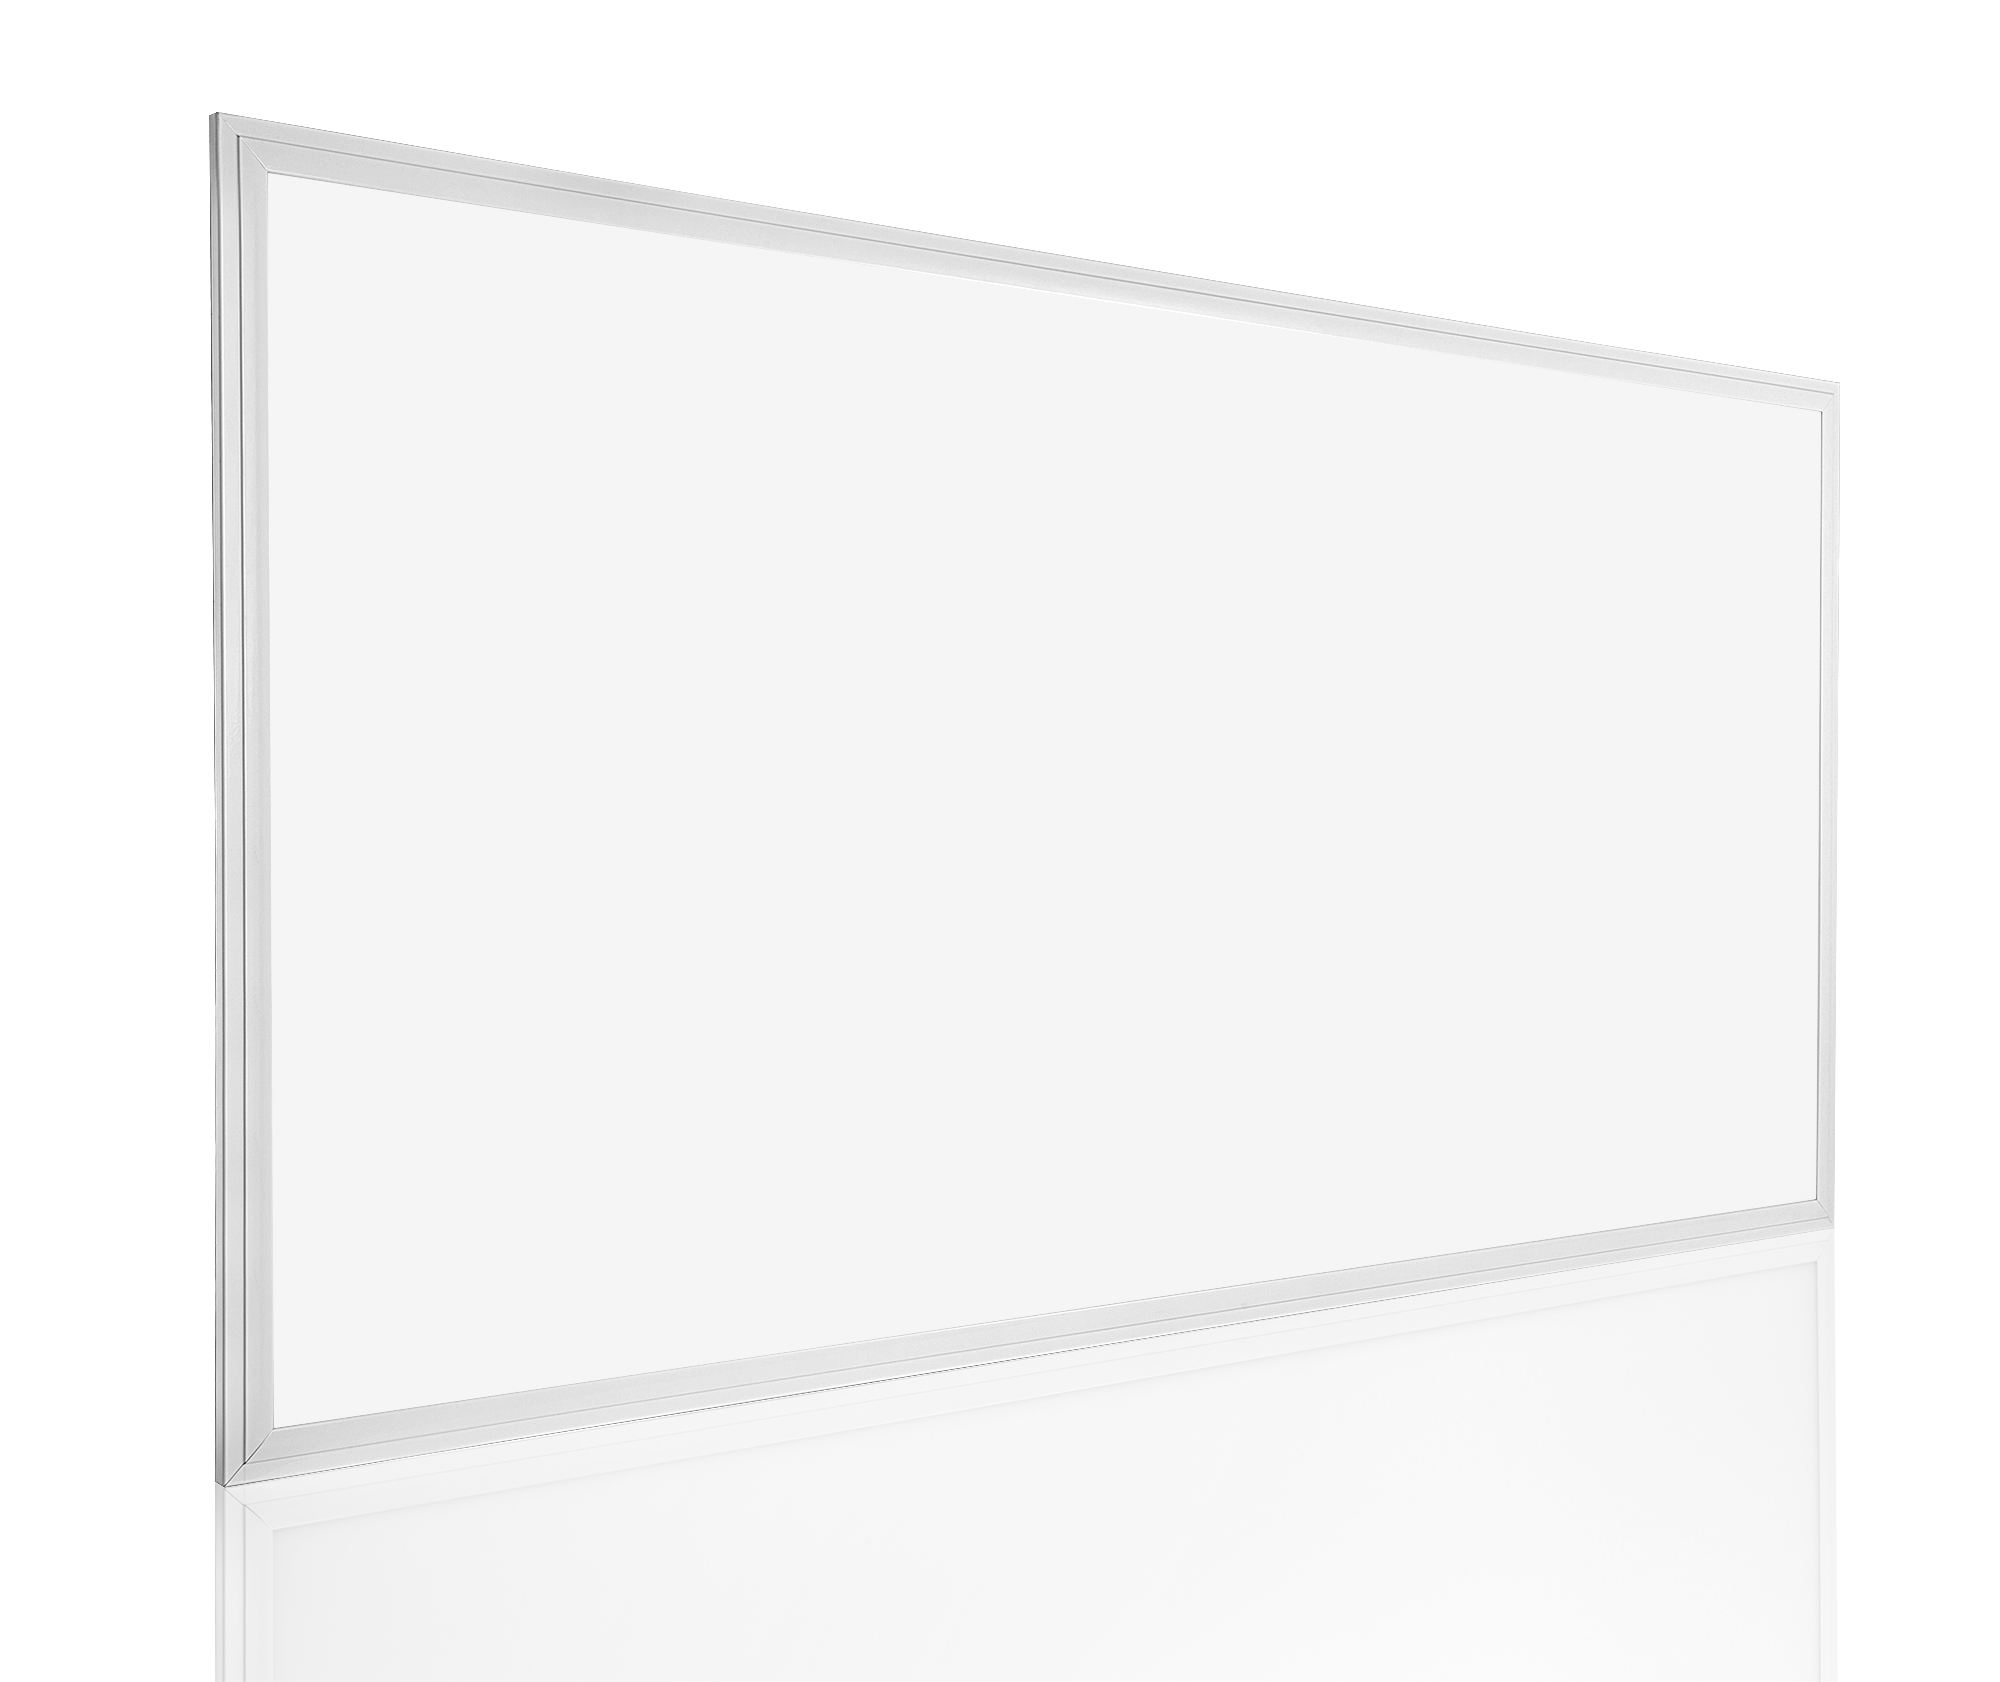 EE. UU. Inventario 2x4FT Led de panel plano 40 w 5000 lumen CCT de tunable